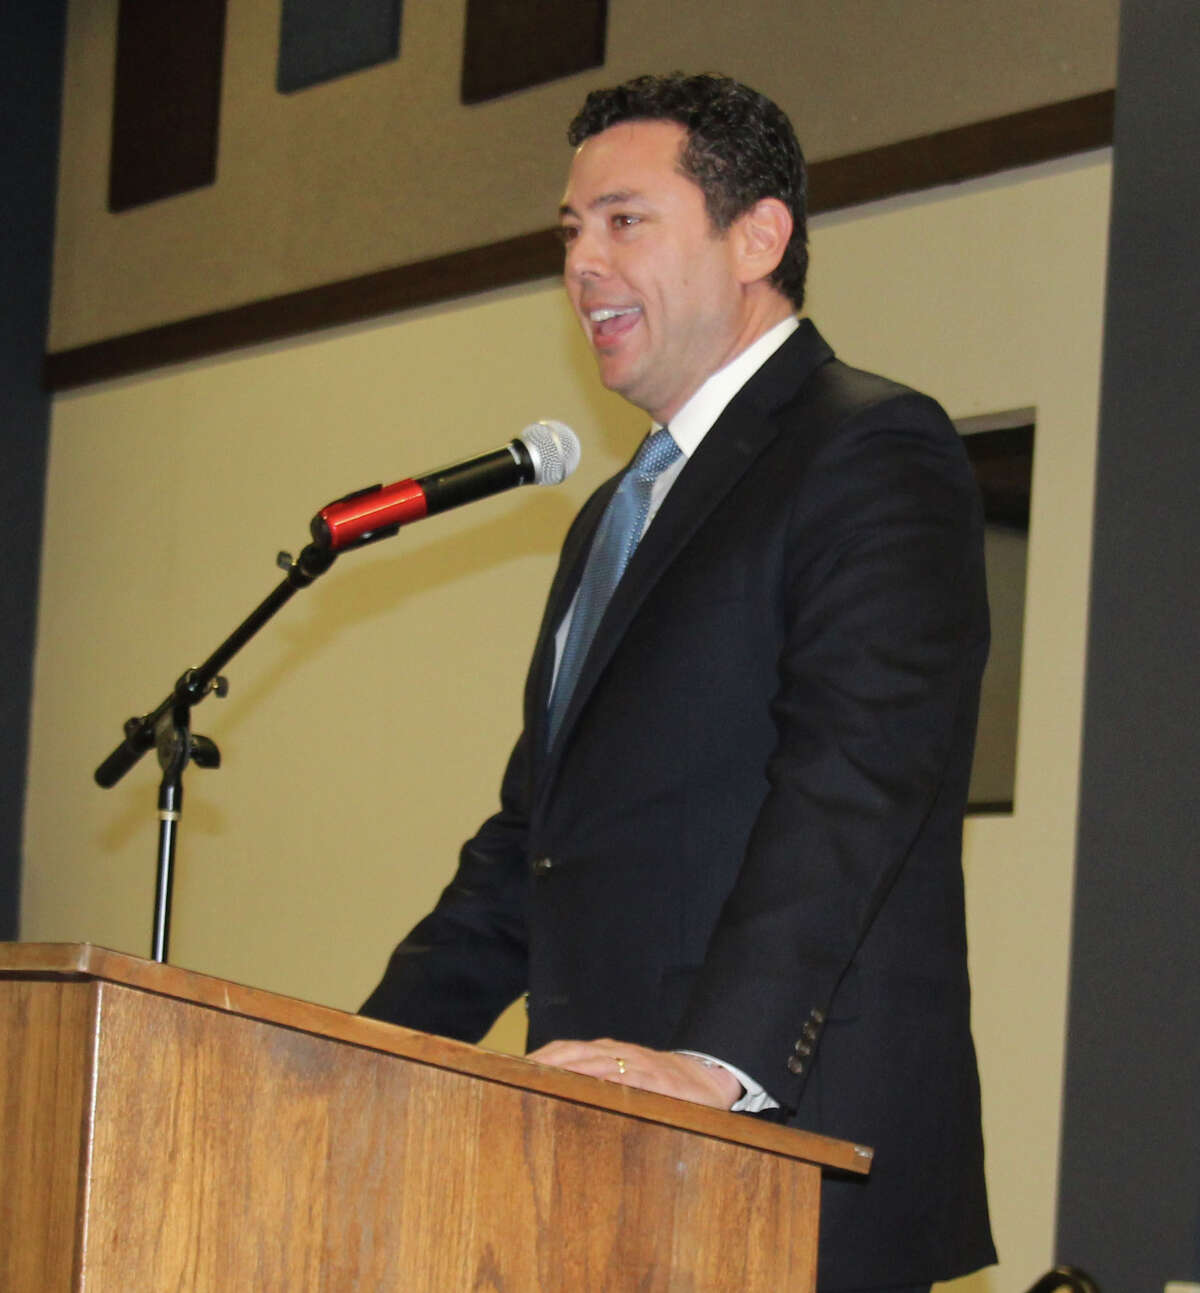 Jason Chaffetz is the guest speaker of the San Jacinto County Republican Party's annual Reagan Dinner on Feb. 17. He discussed much of his own background, personal philosophy and the Benghazi incident.